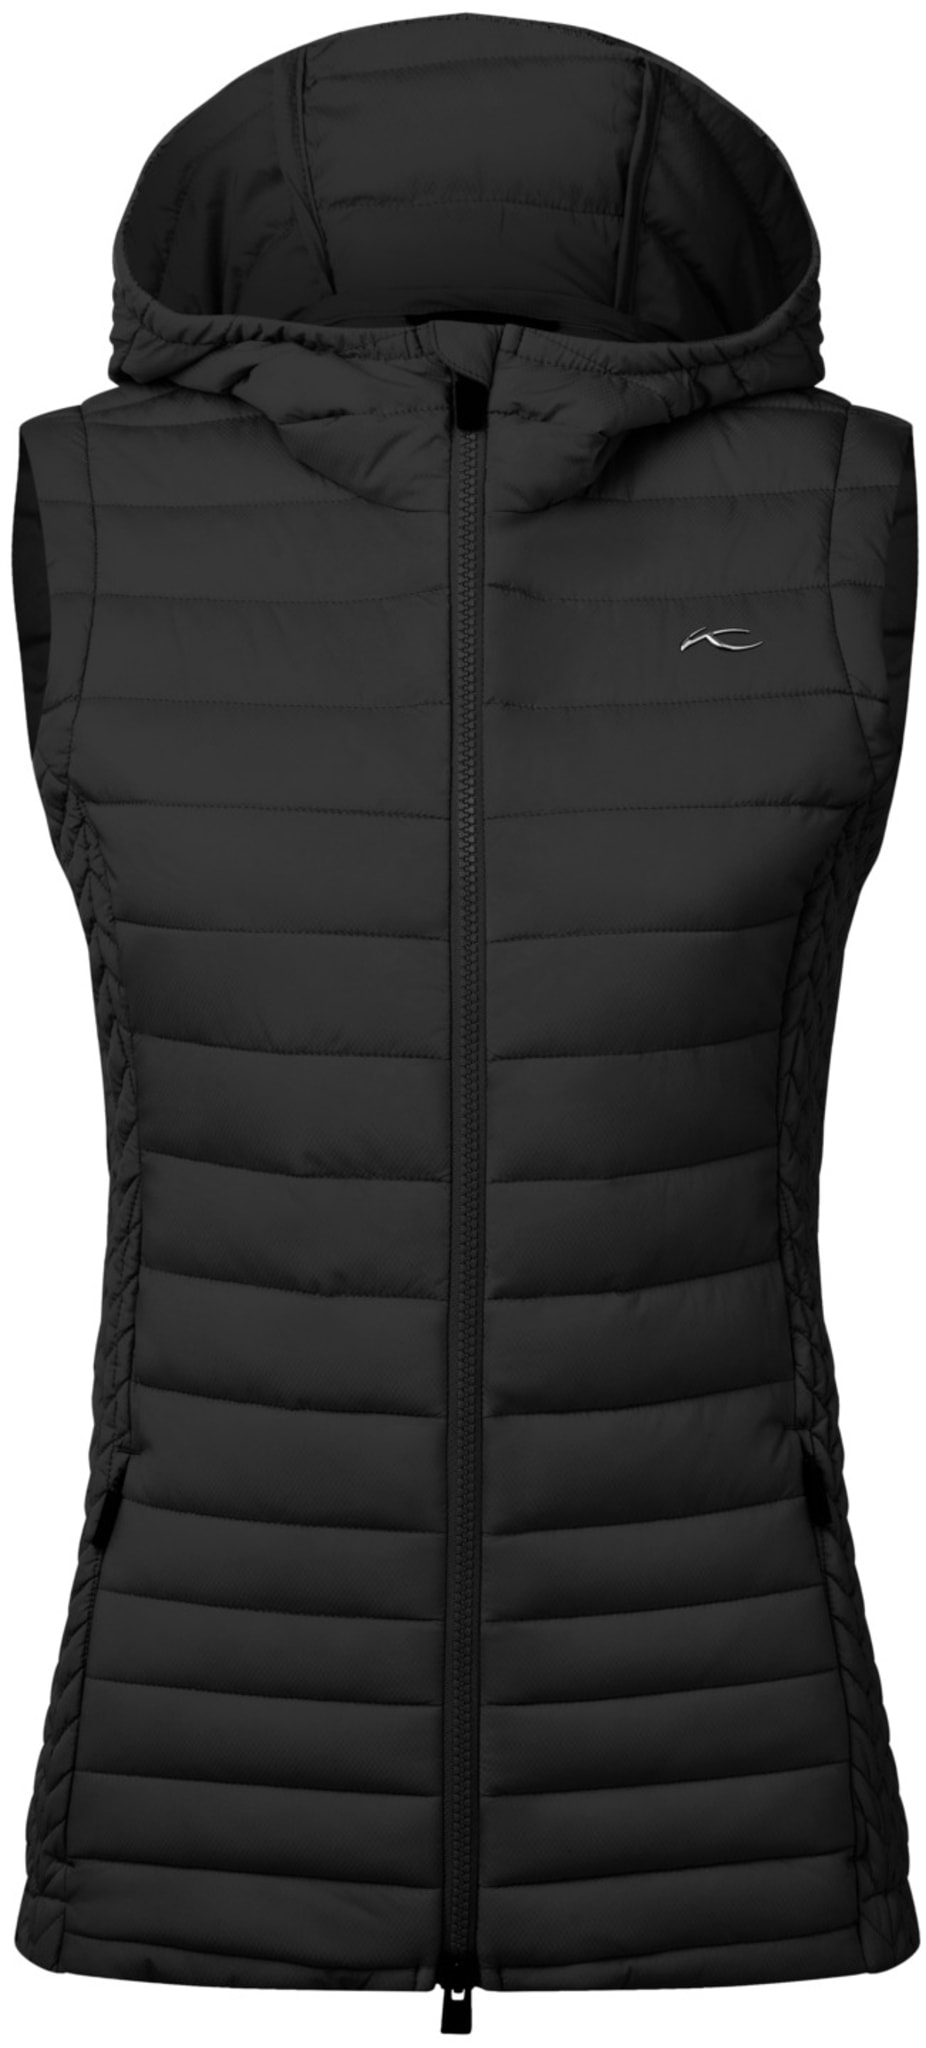 Macuna Hooded Insulation Vest W